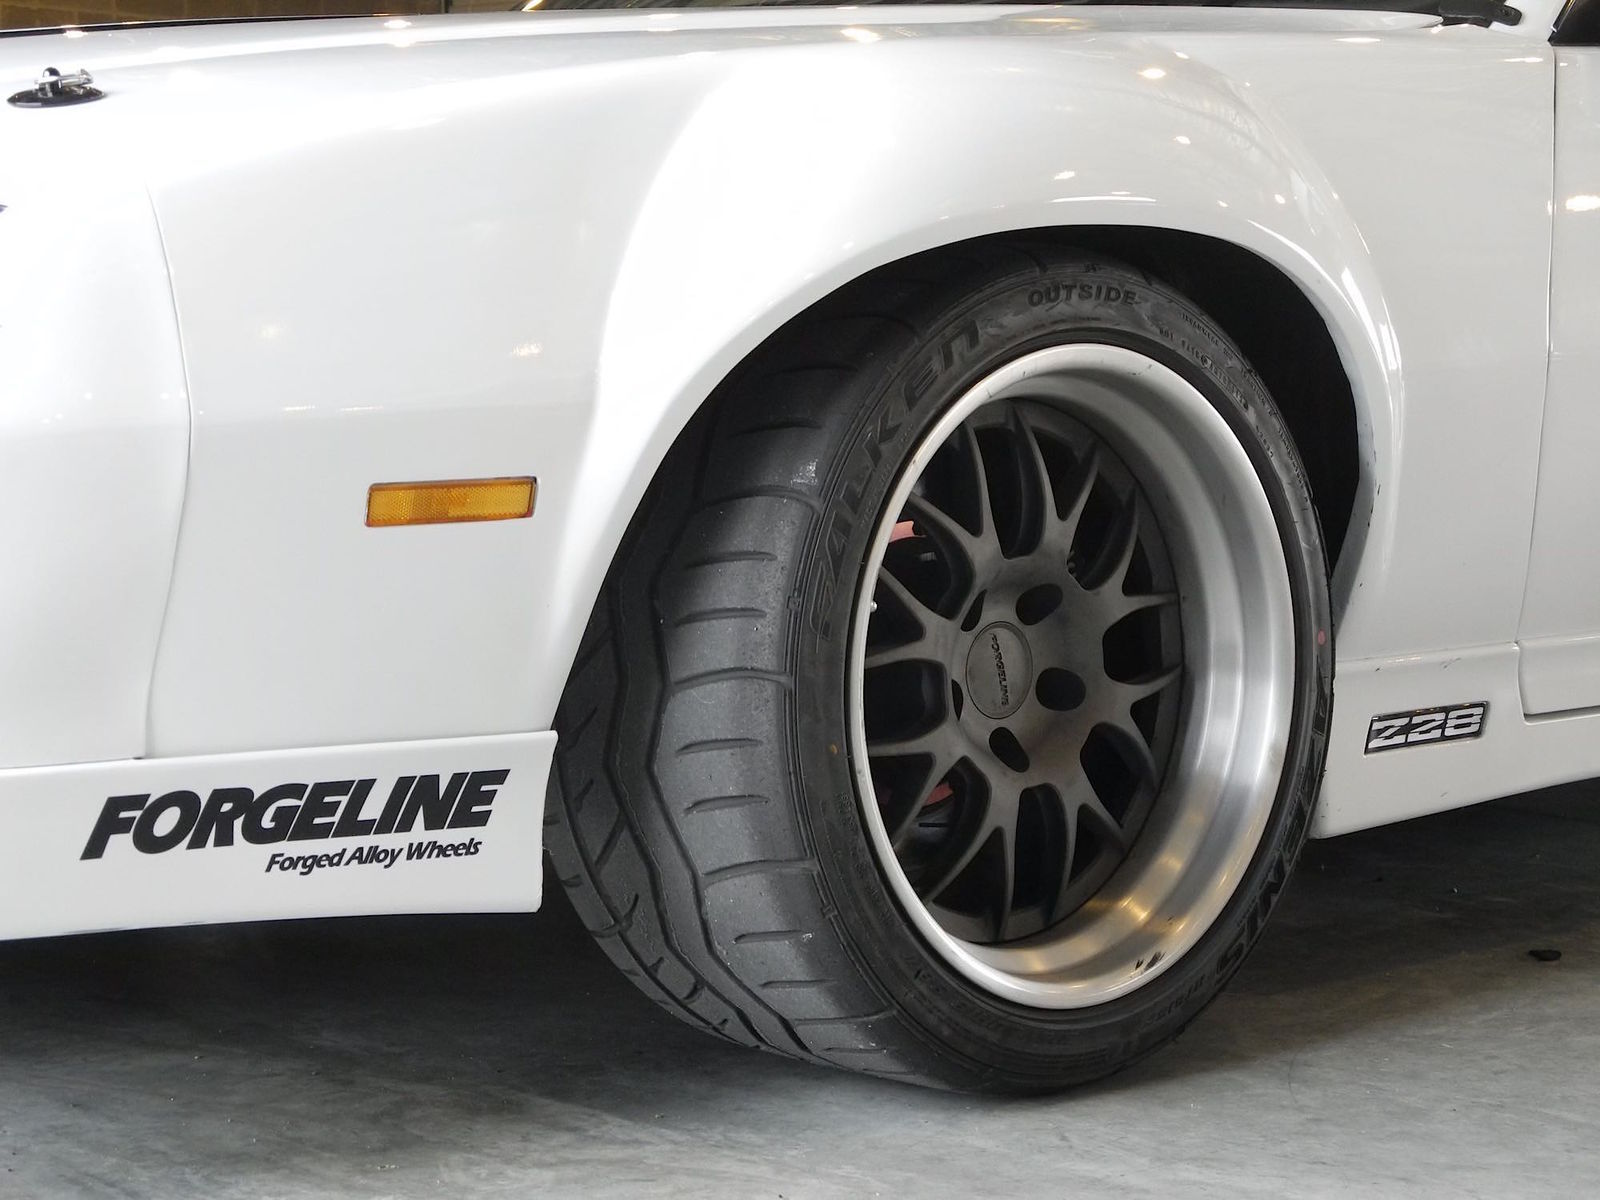 1989 Chevrolet Camaro | Camaro Z28 on Forgeline GW3 Wheels